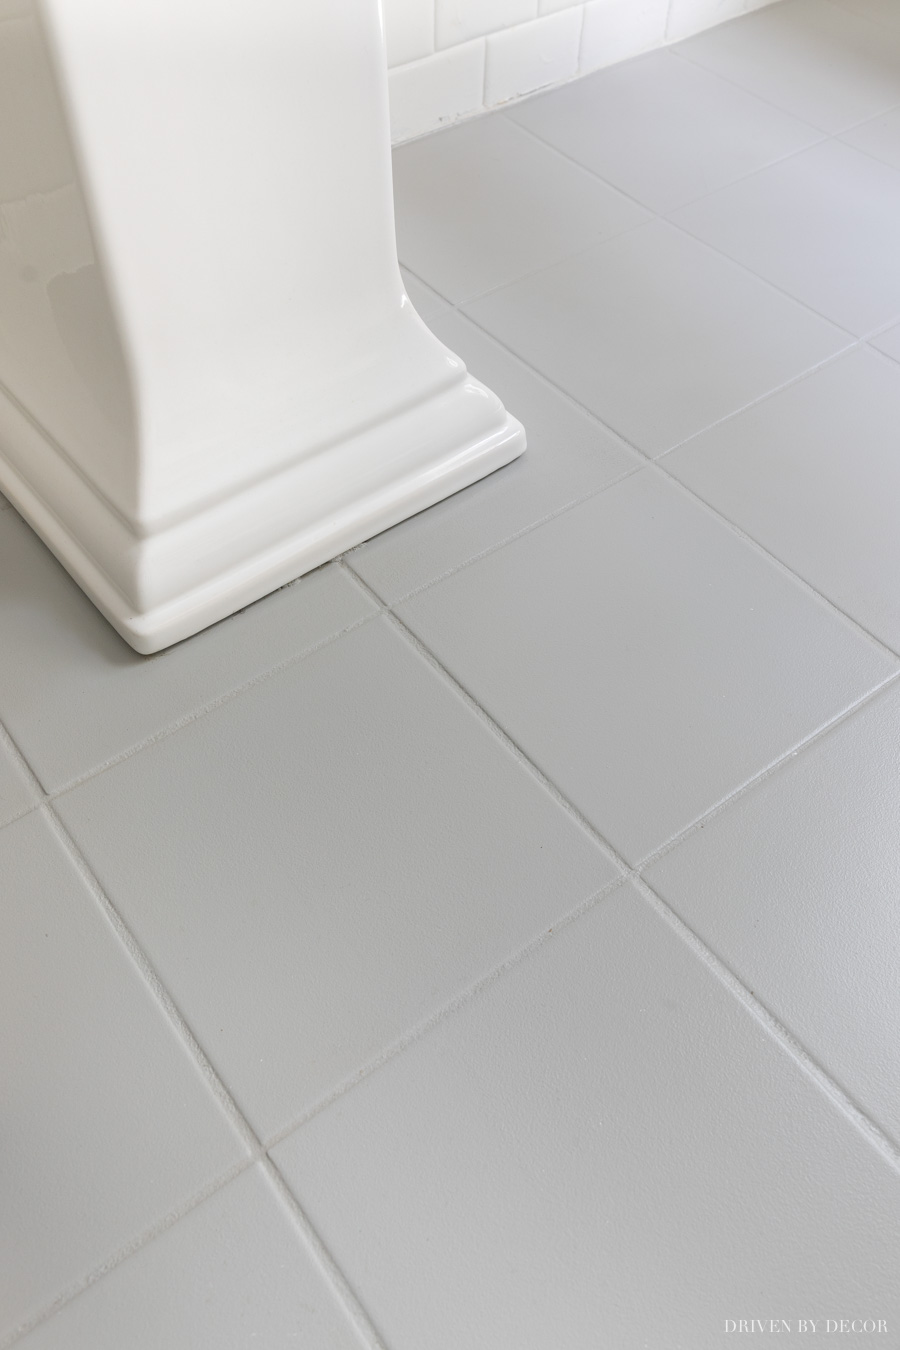 How well do painted tile floors hold up over time? This post answers that question!